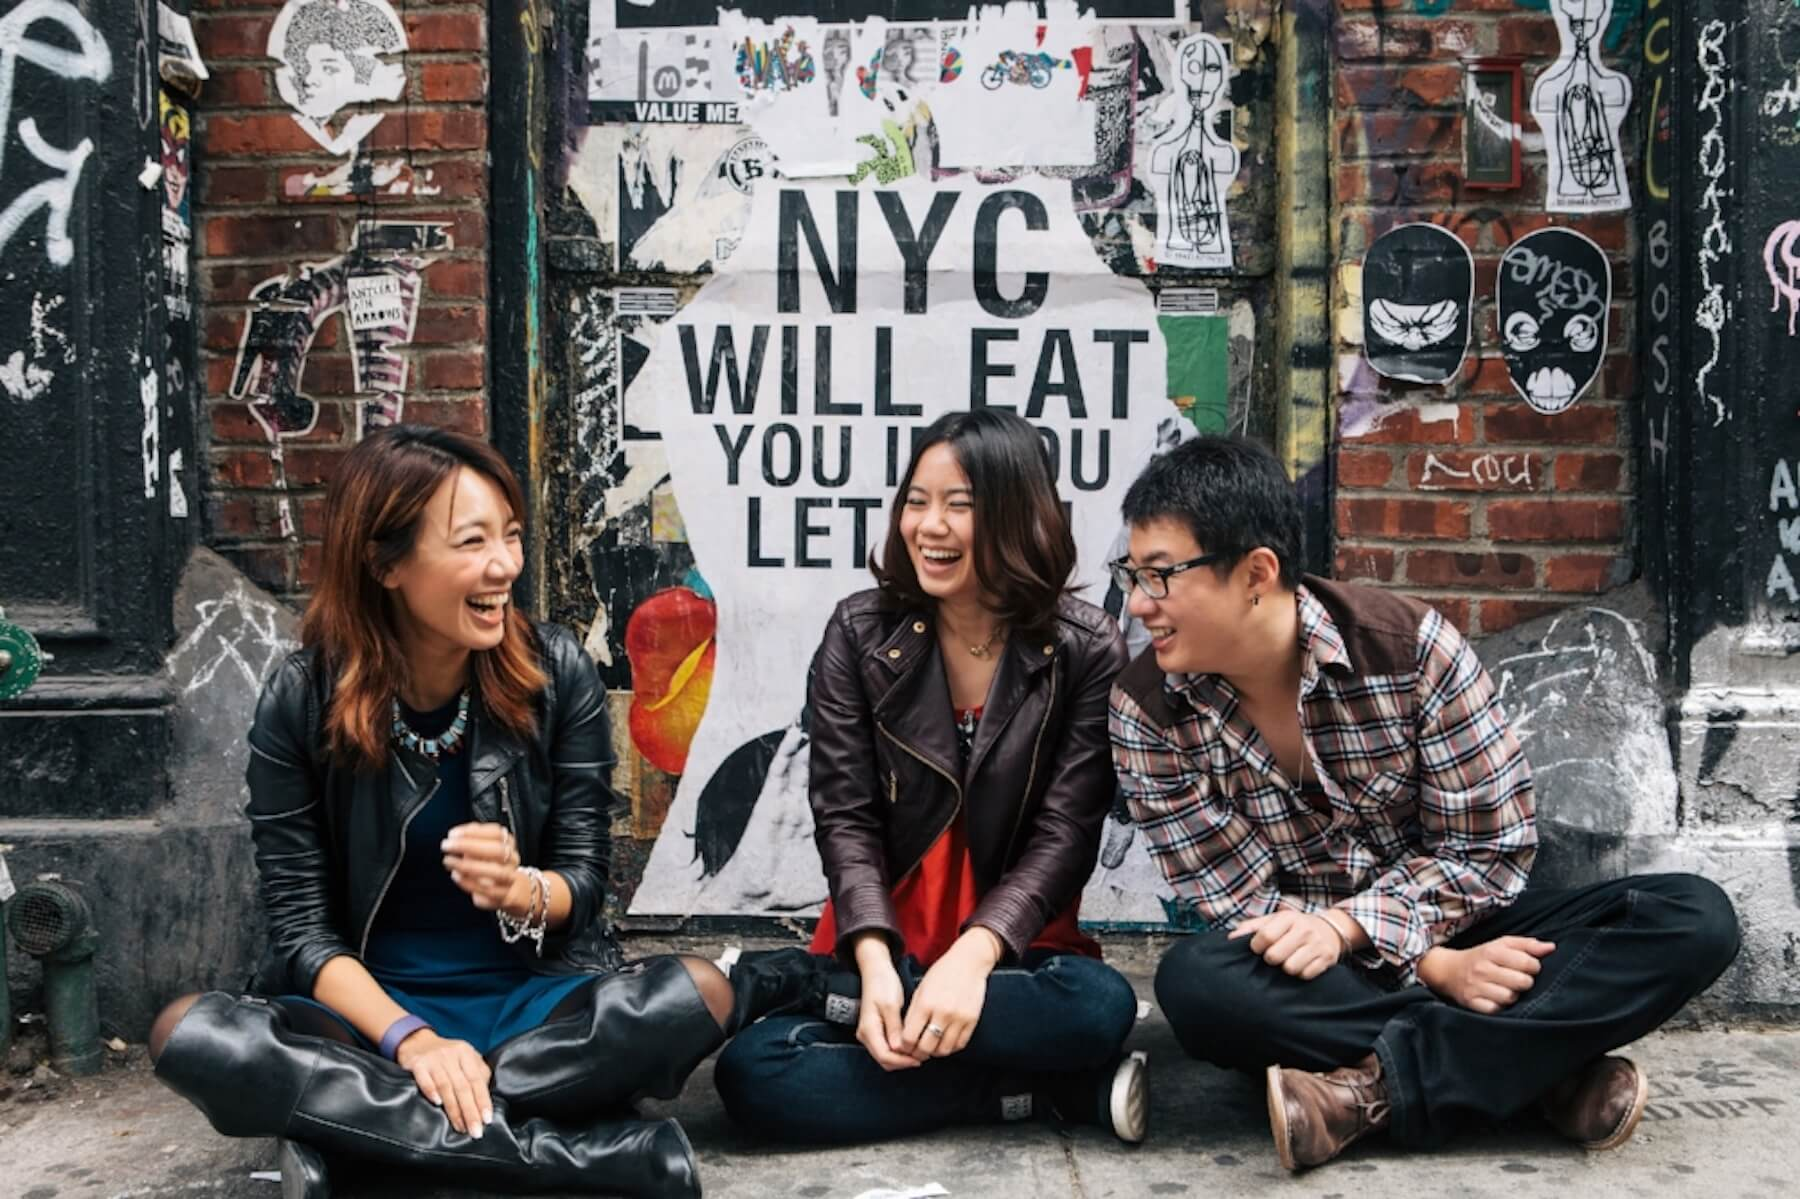 Three friends sitting on the ground together and laughing in front of a graffiti wall in New York City, USA